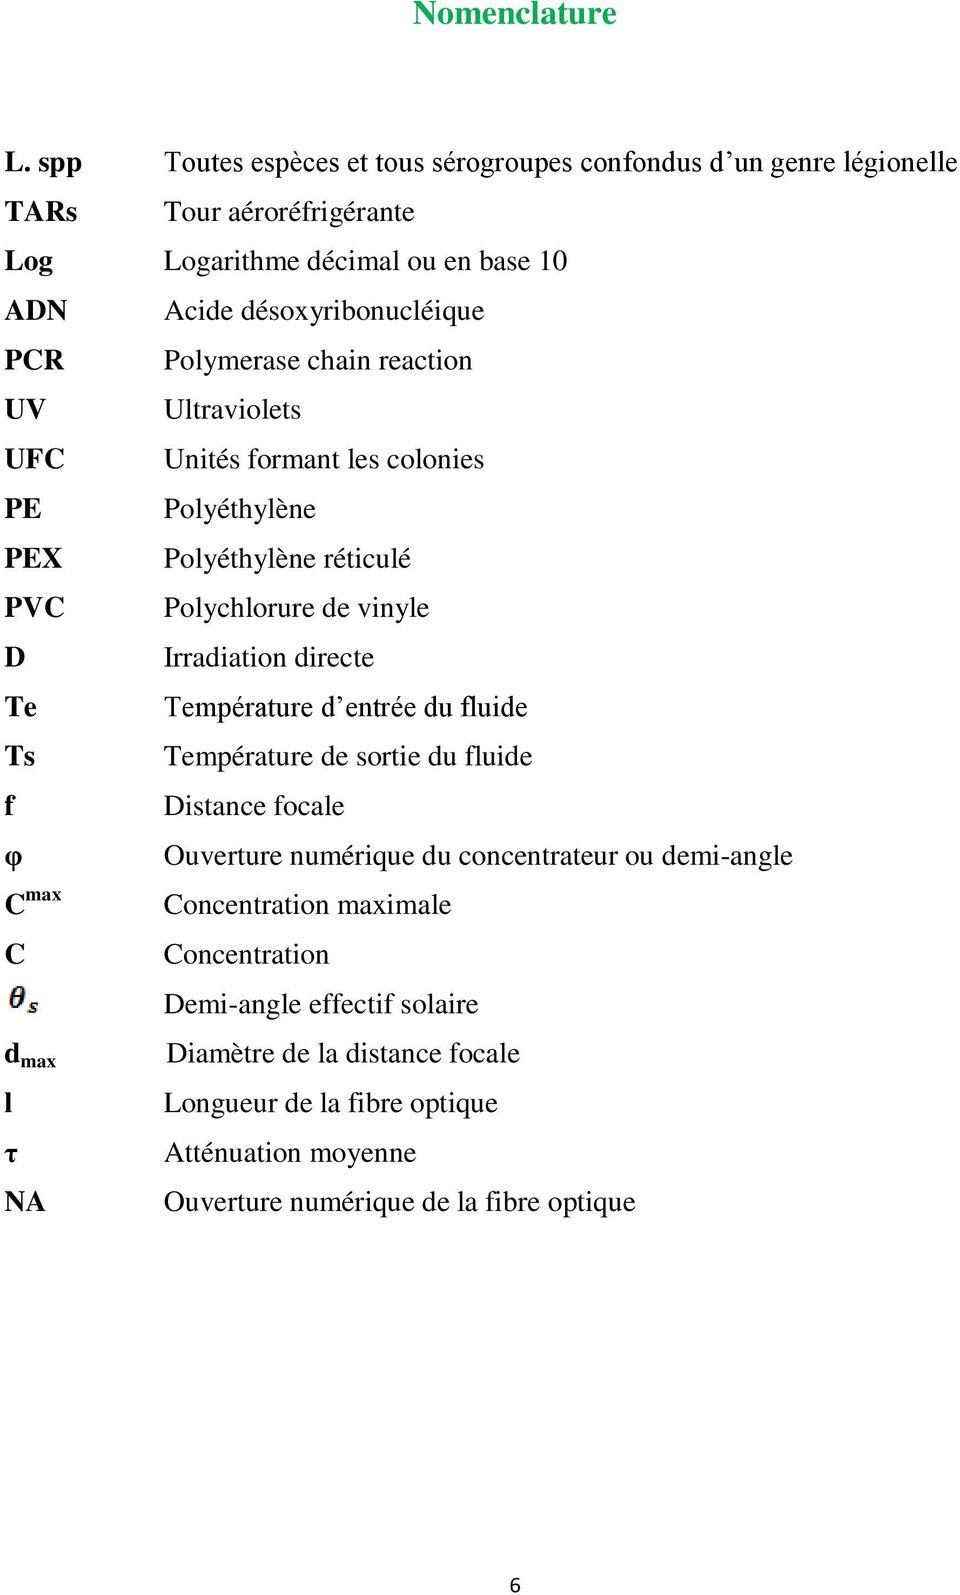 Polymerase chain reaction UV Ultraviolets UFC Unités formant les colonies PE Polyéthylène PEX Polyéthylène réticulé PVC Polychlorure de vinyle D Irradiation directe Te